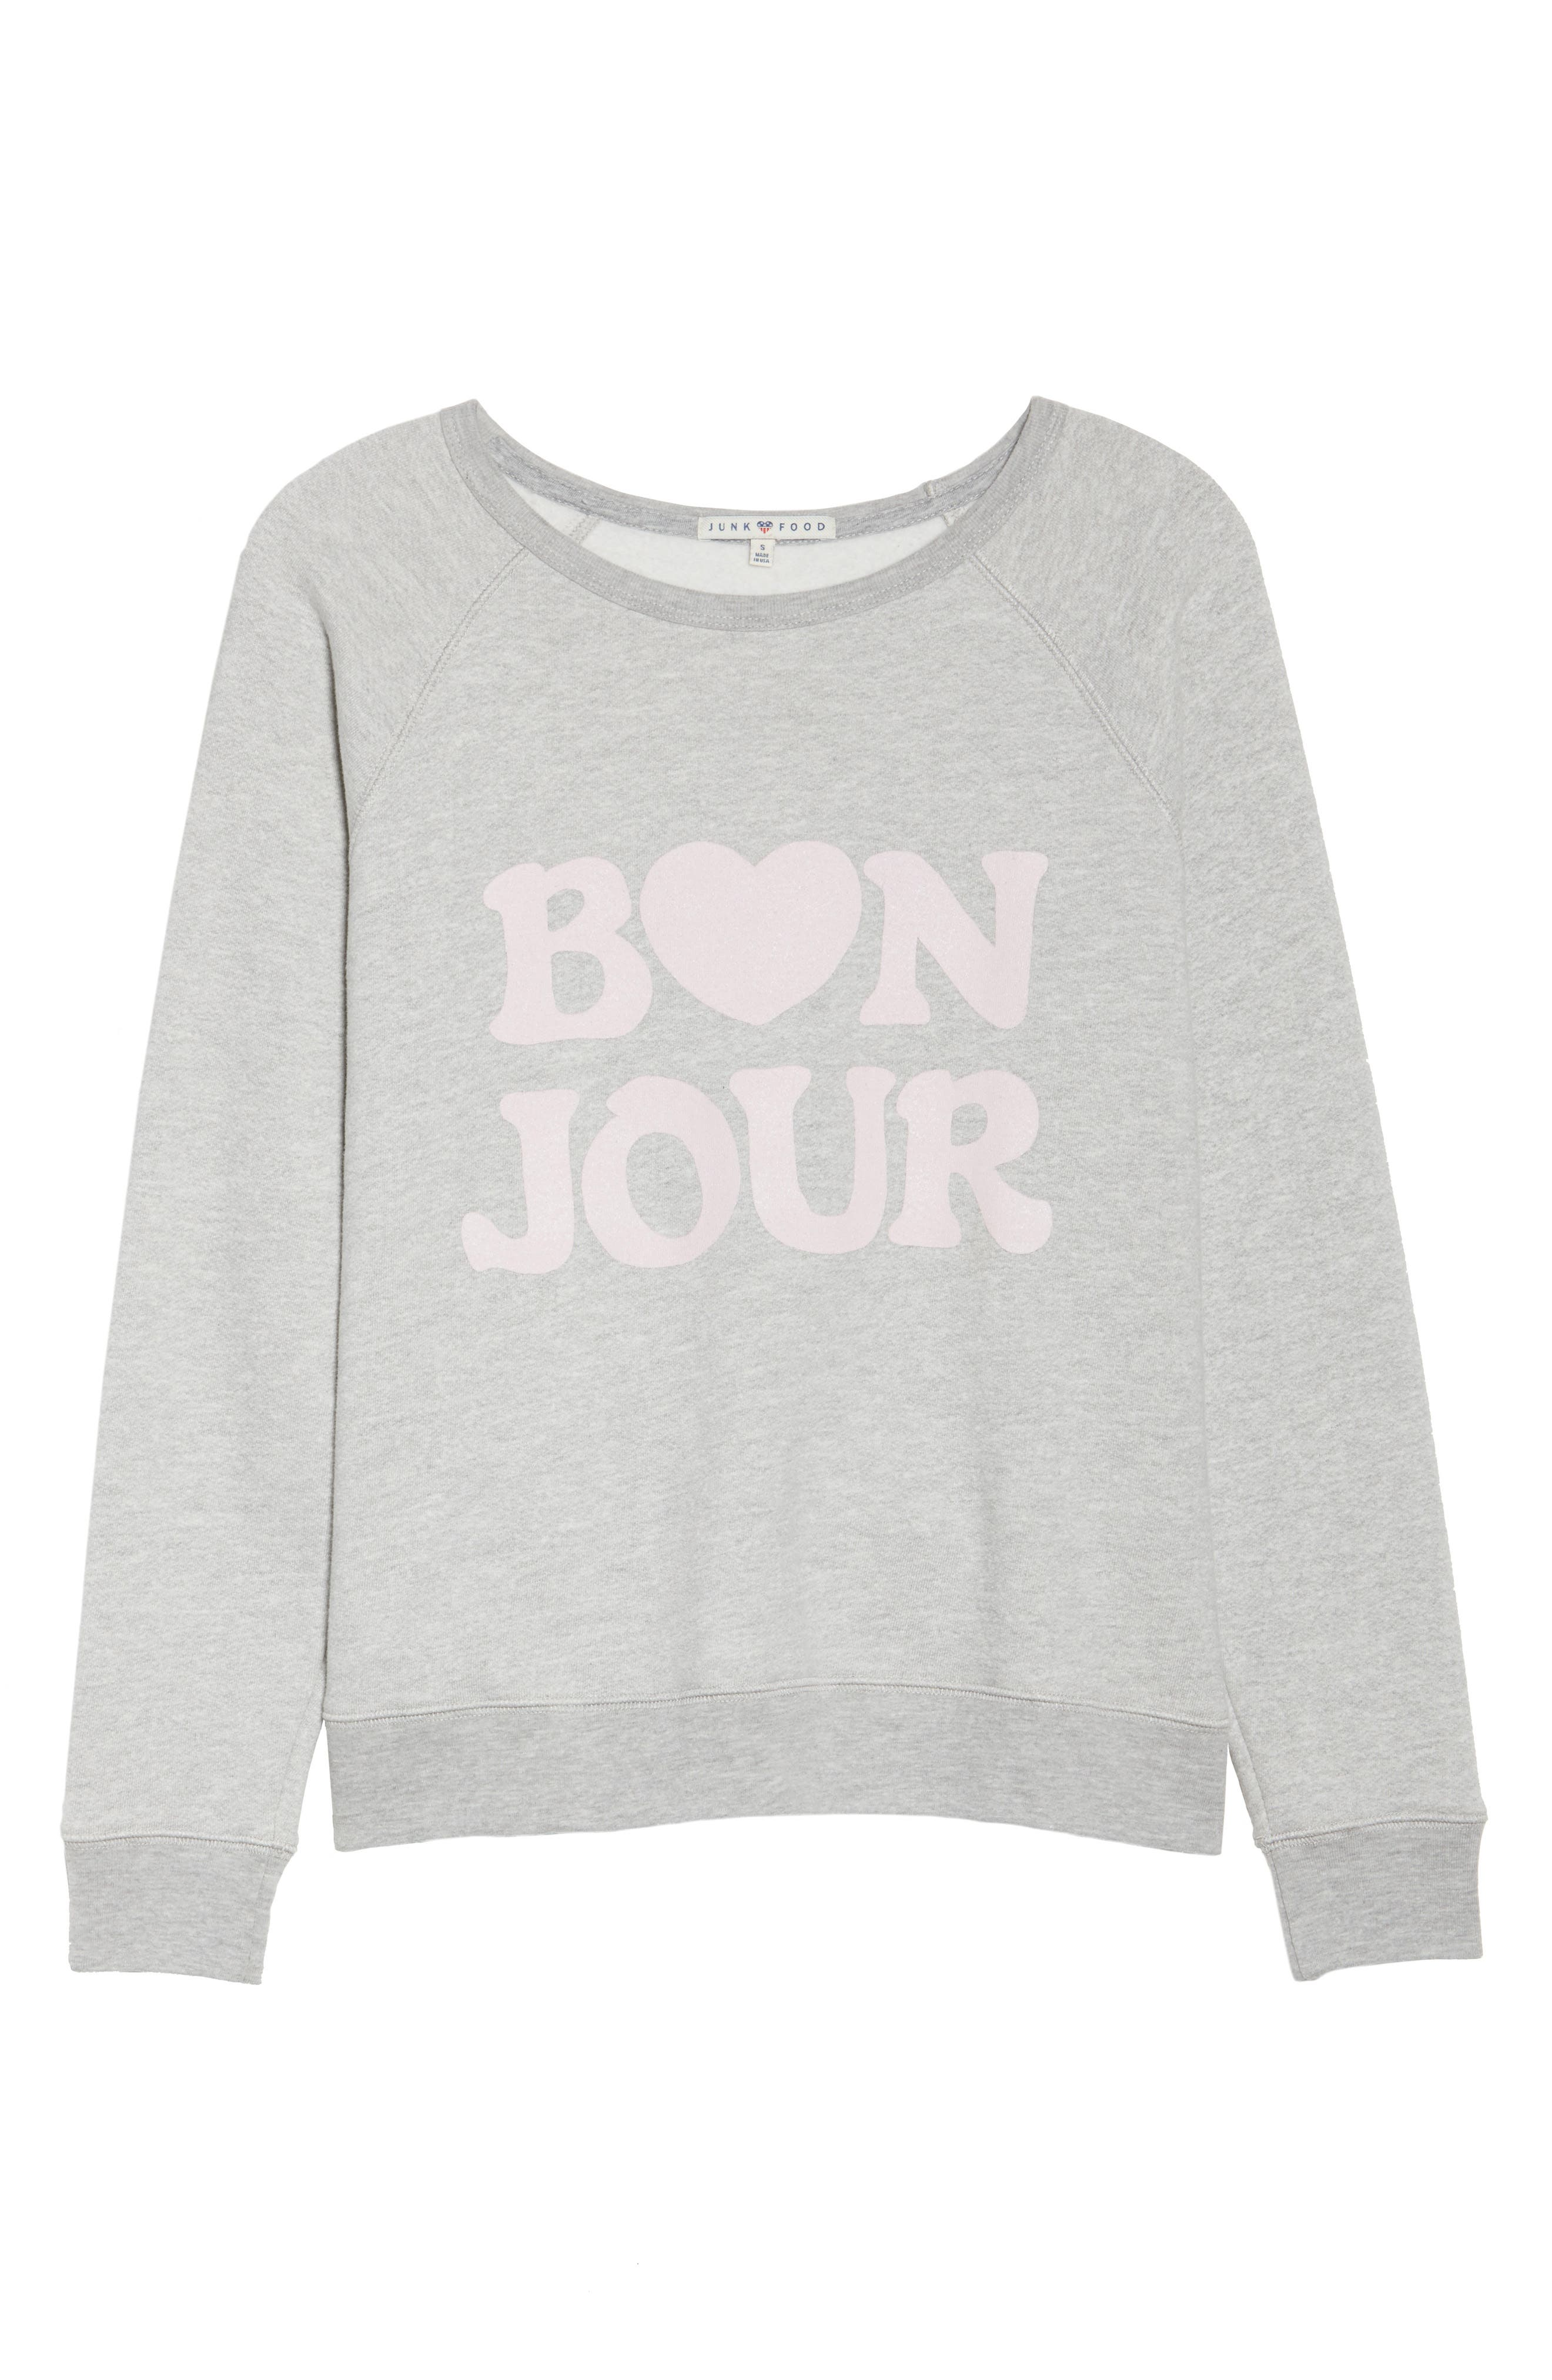 Bon Jour Sweatshirt,                             Alternate thumbnail 6, color,                             028